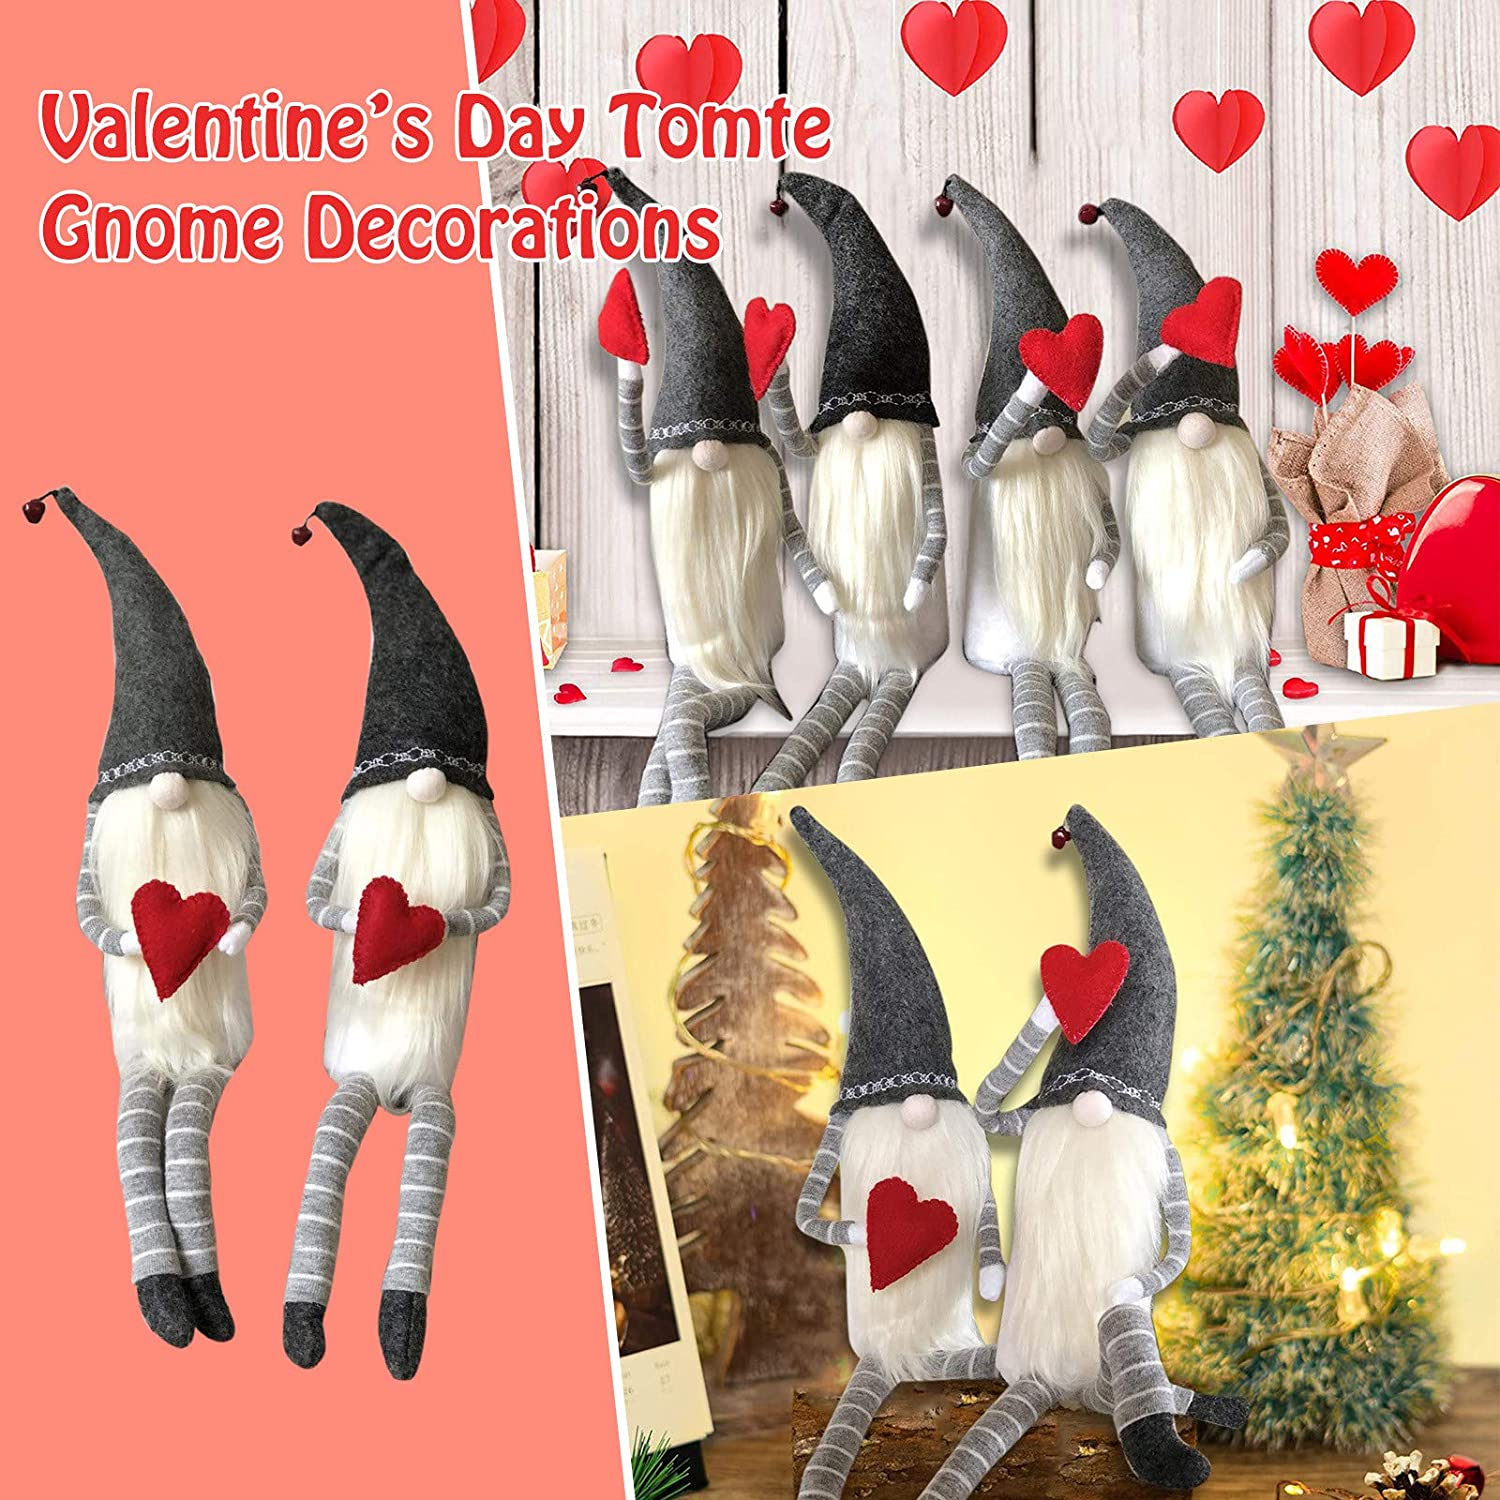 2PCS Valentines Day Decor B Valentine Gnome Couple Love Swedish Tomte Decorations Home Valentine Ornaments,Handmade Valentines Gifts for Women Farmhouse Holiday Home Decors Holiday Presents